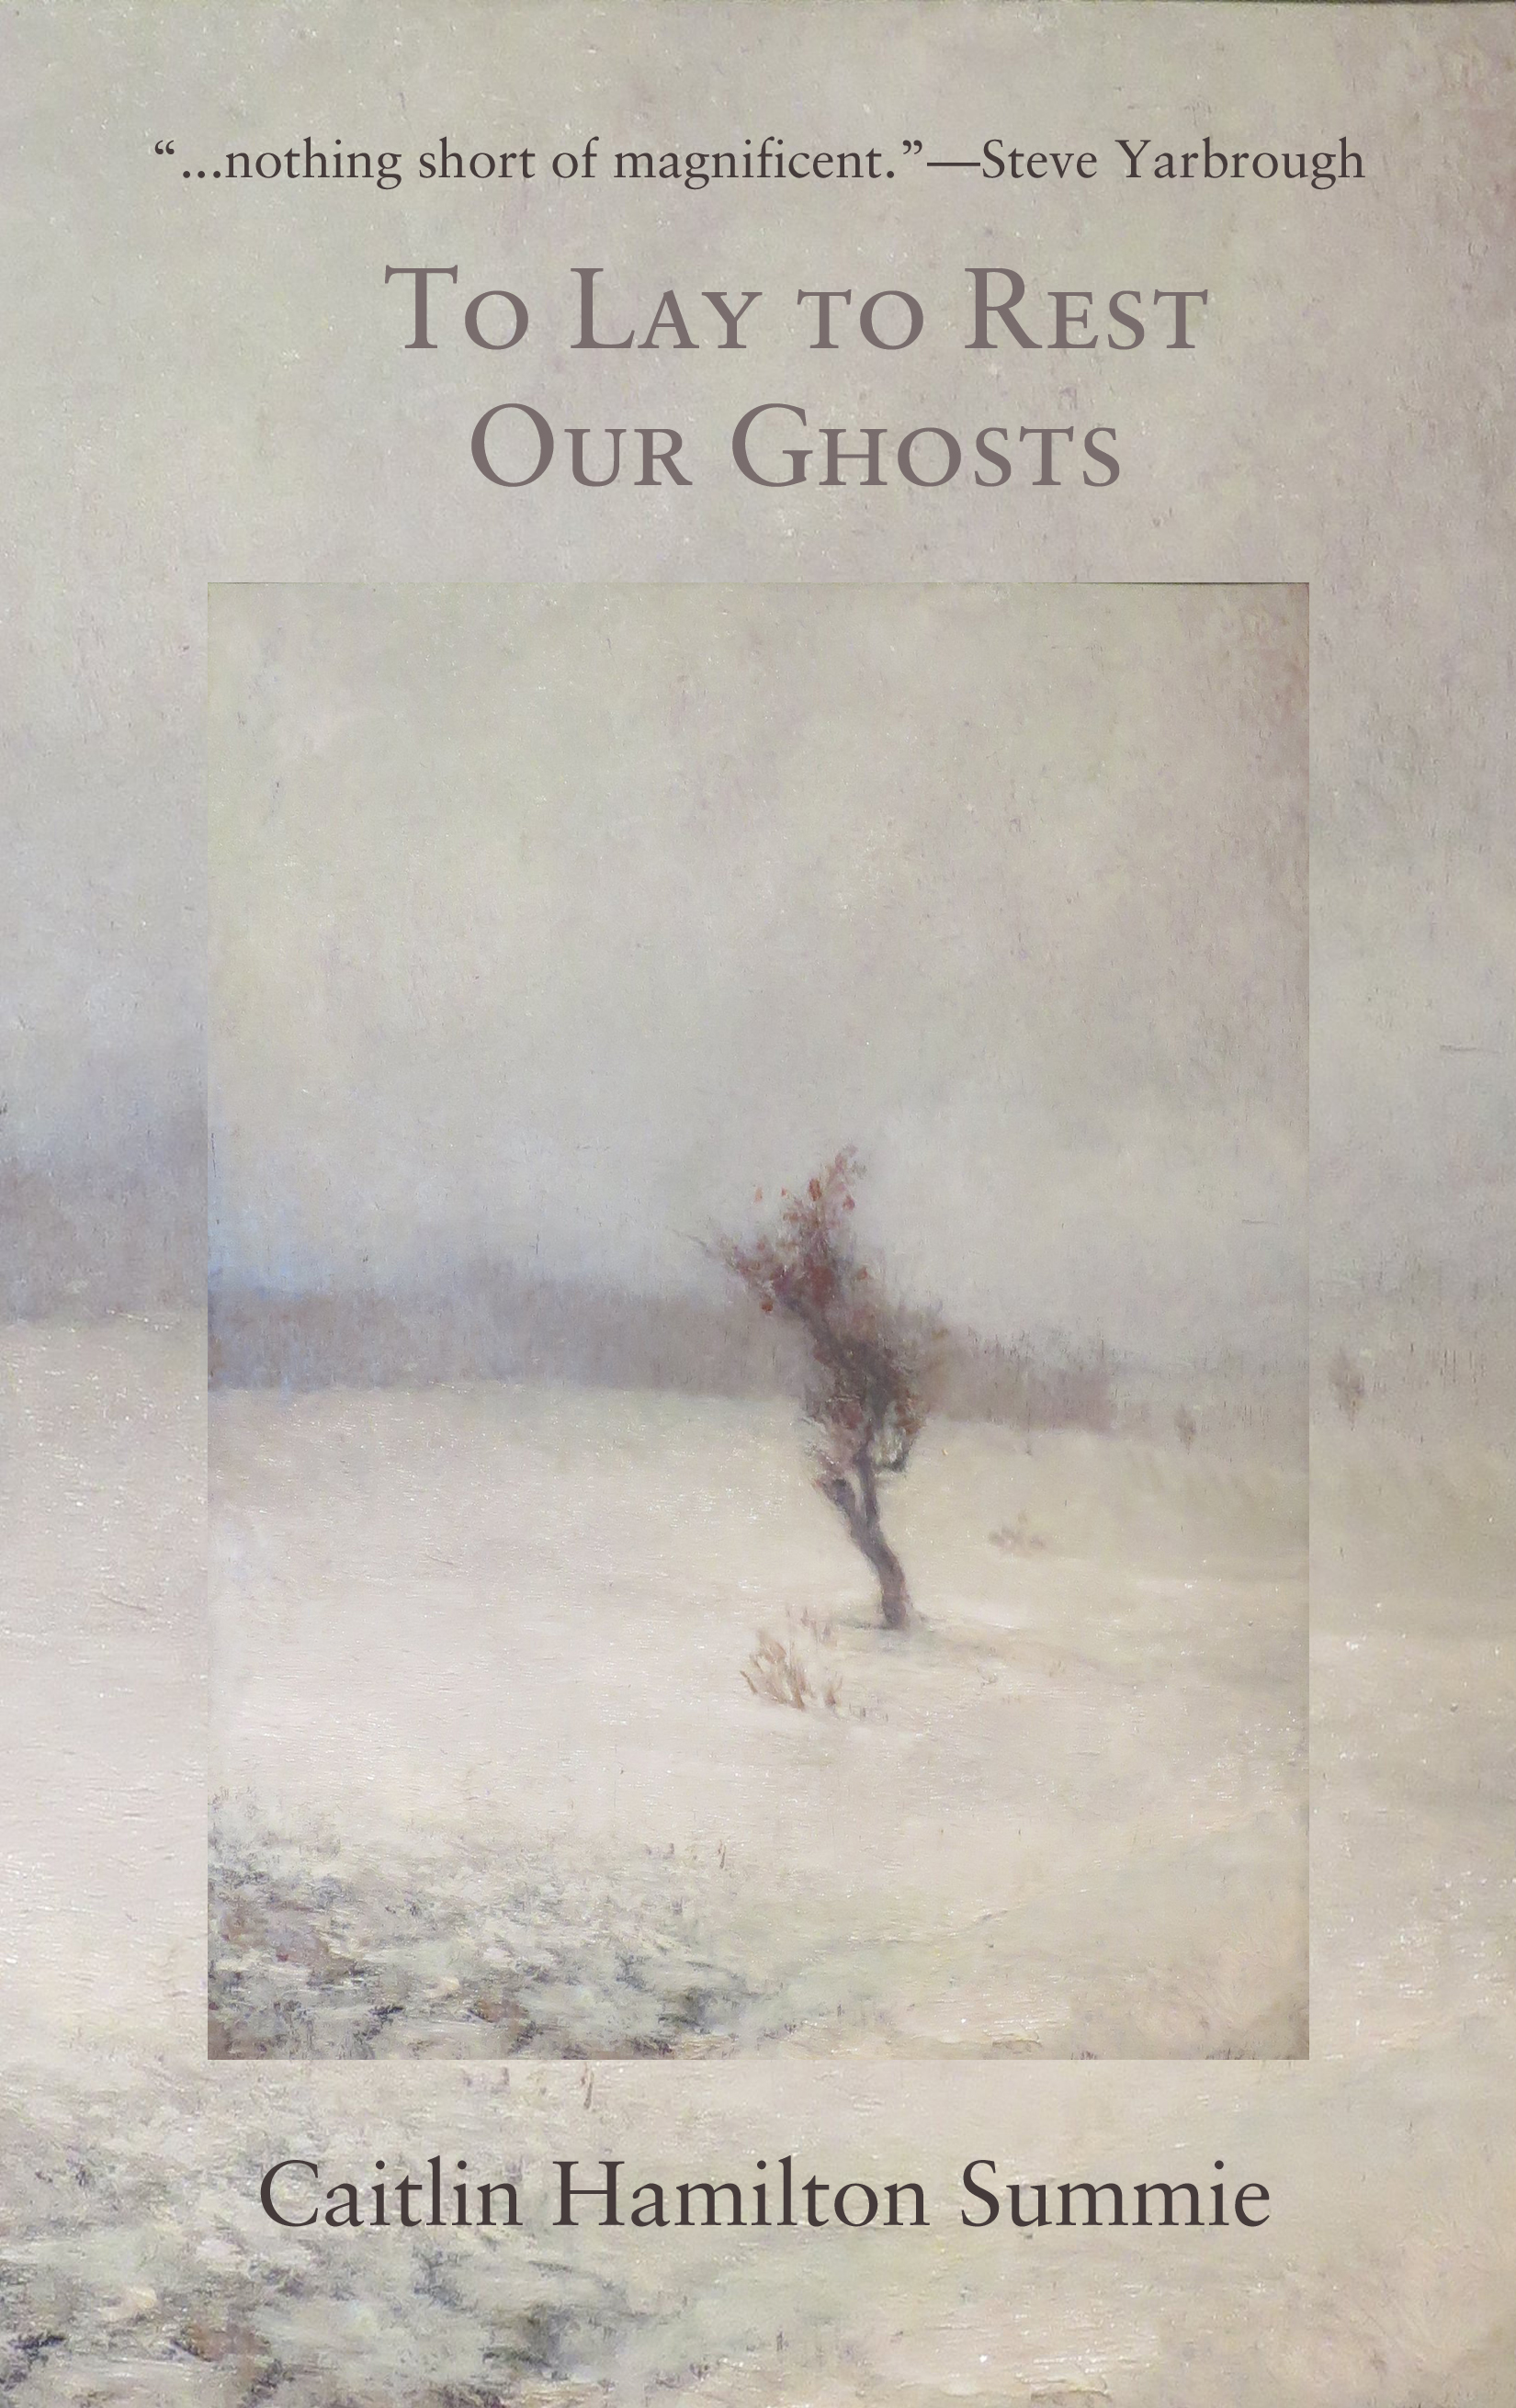 ghosts-cover-2-21-2017-2